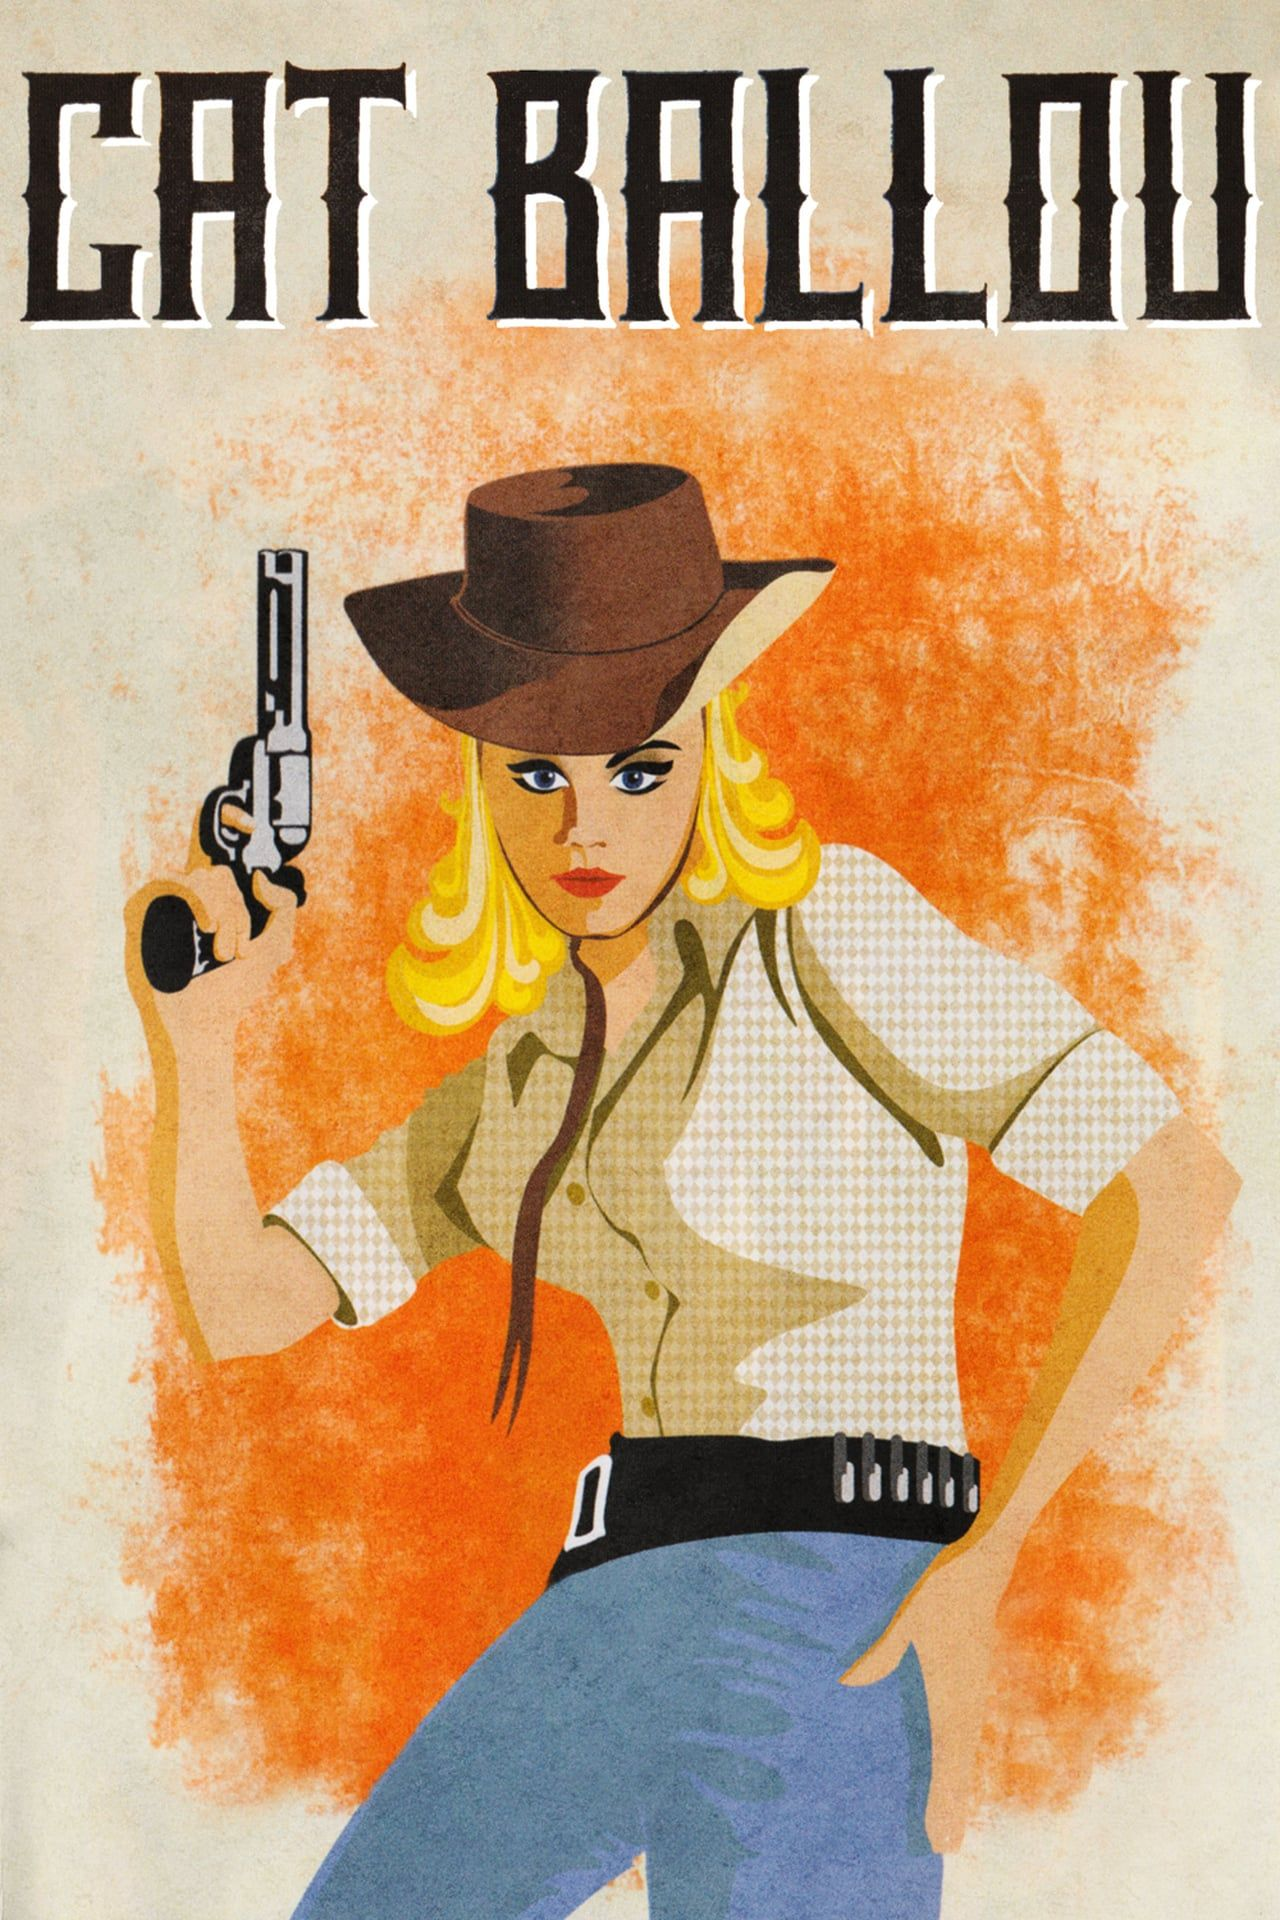 I'm a Movie Lover image by Ray Welch Cat ballou, Full